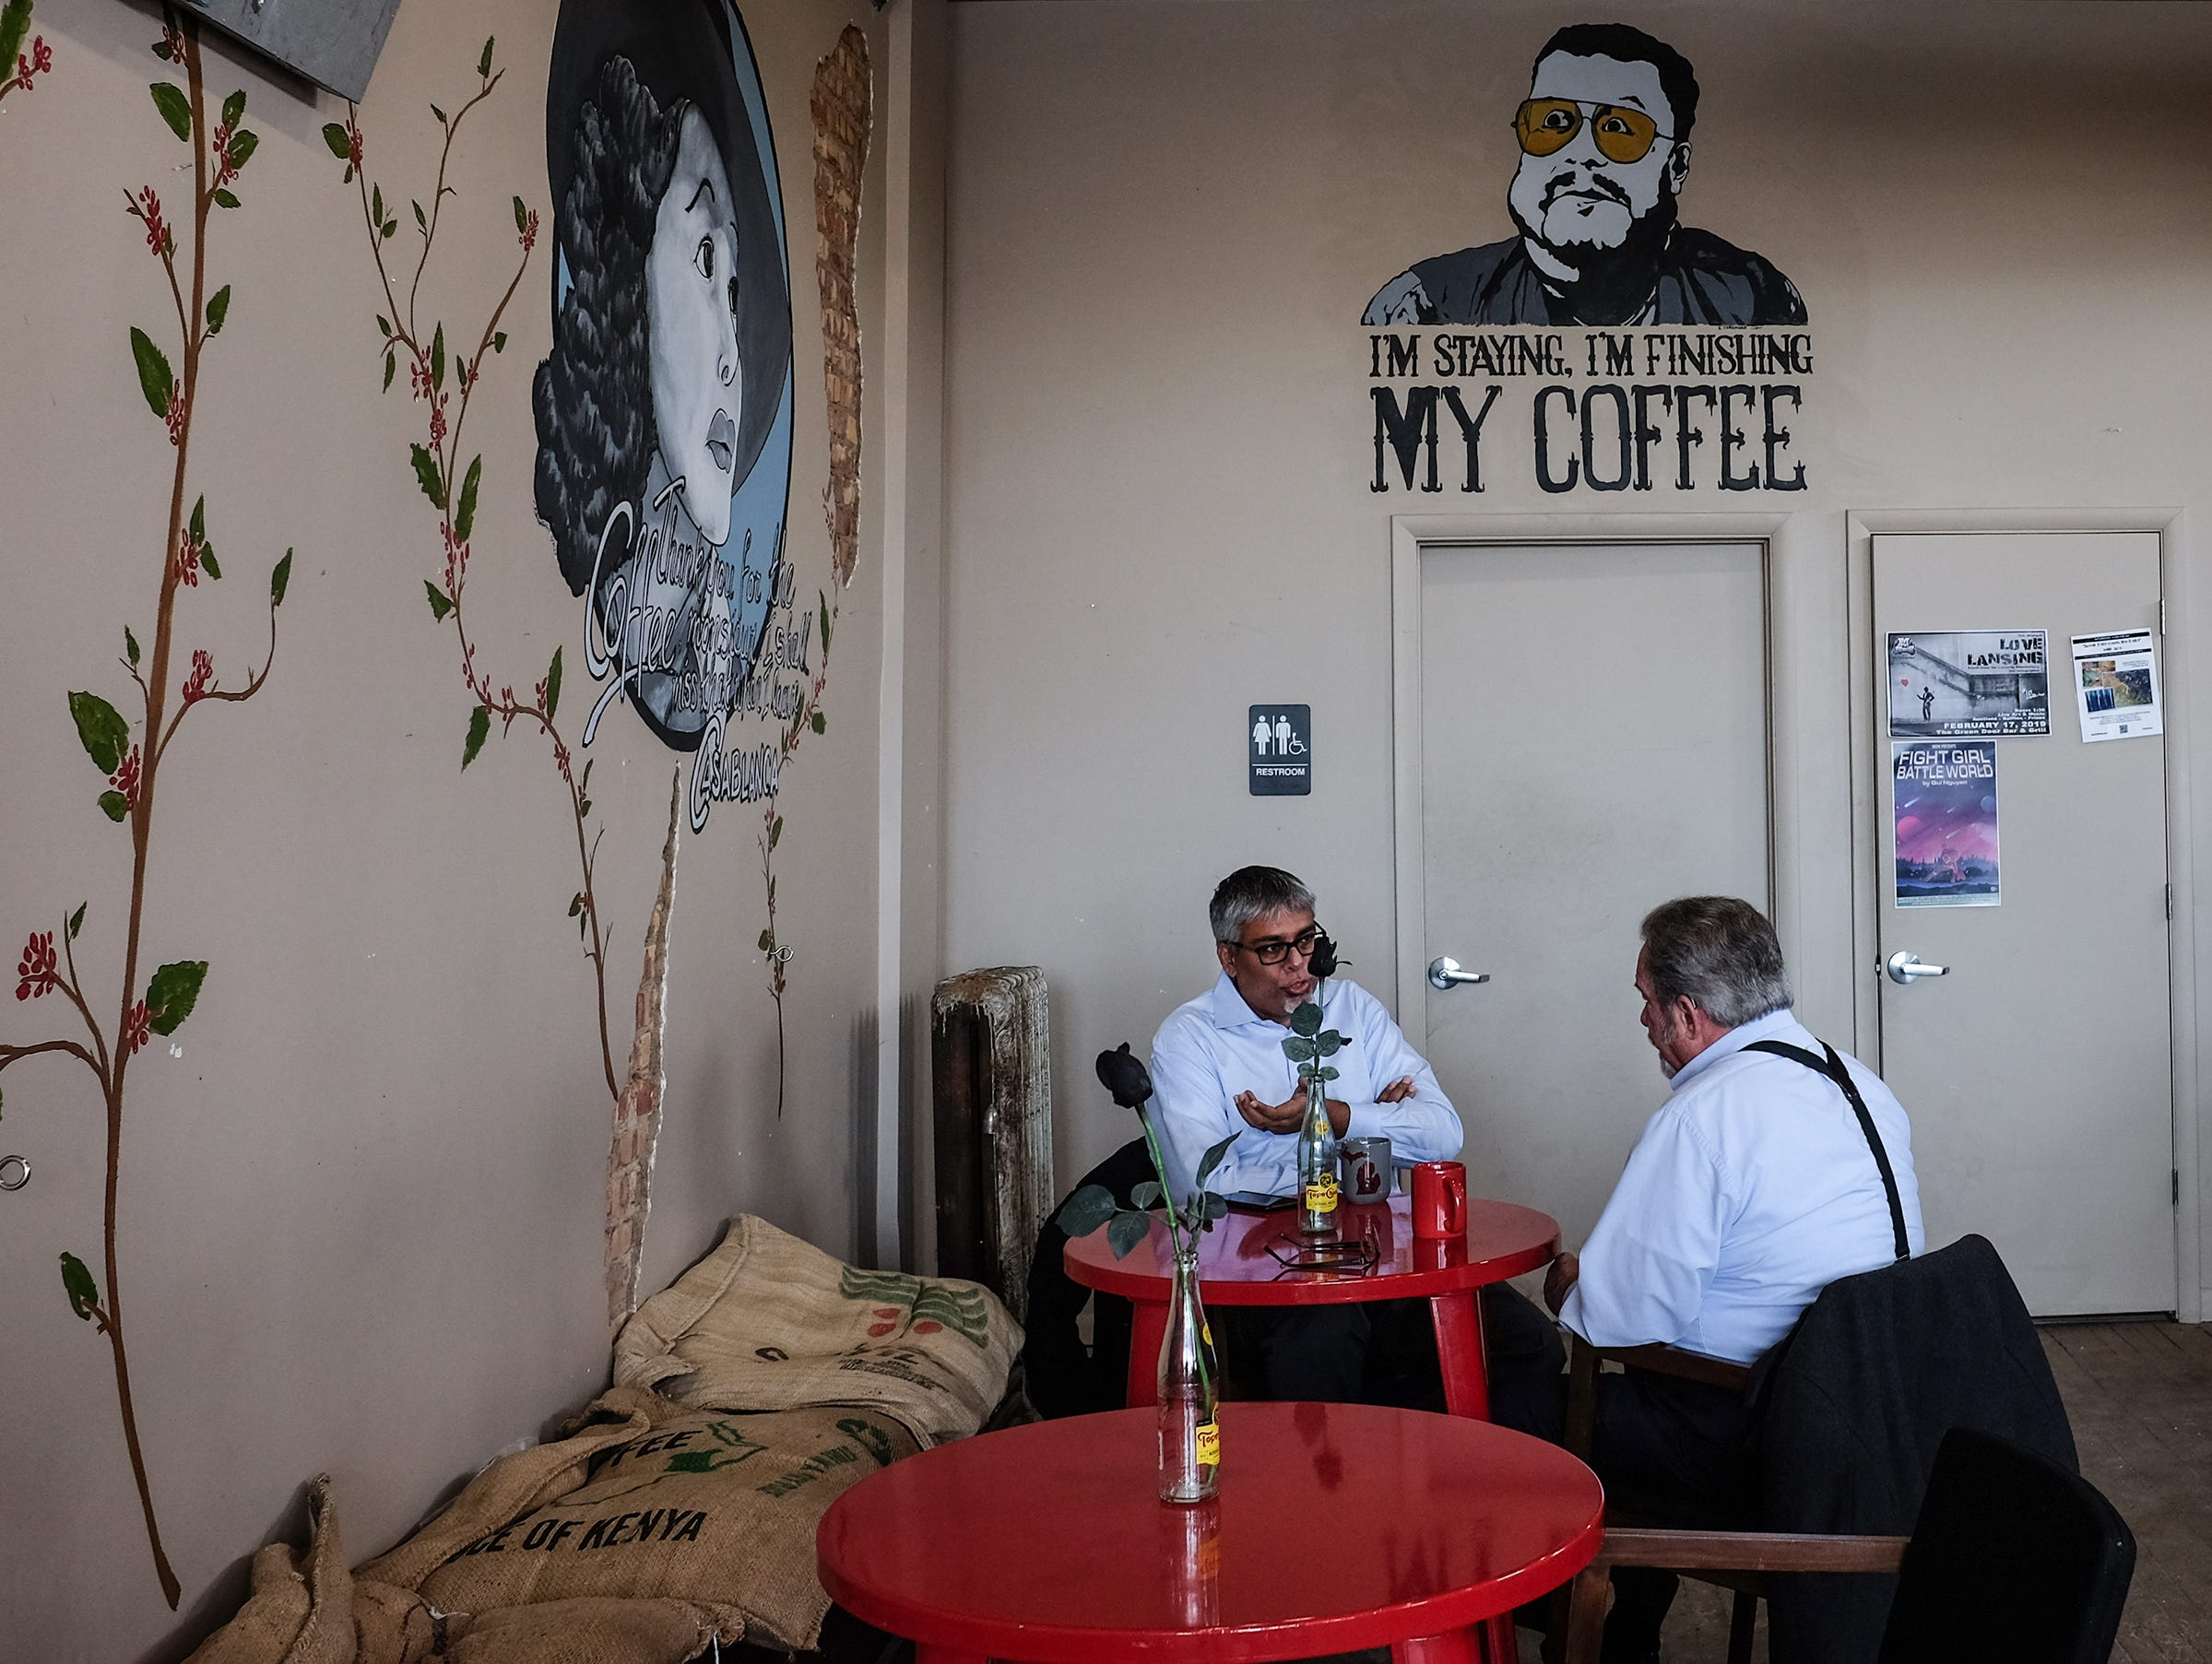 The Crafted Bean in Lansing shown here, and DeWitt, have a unique ambiance as well as craft coffees and a place for conversation.